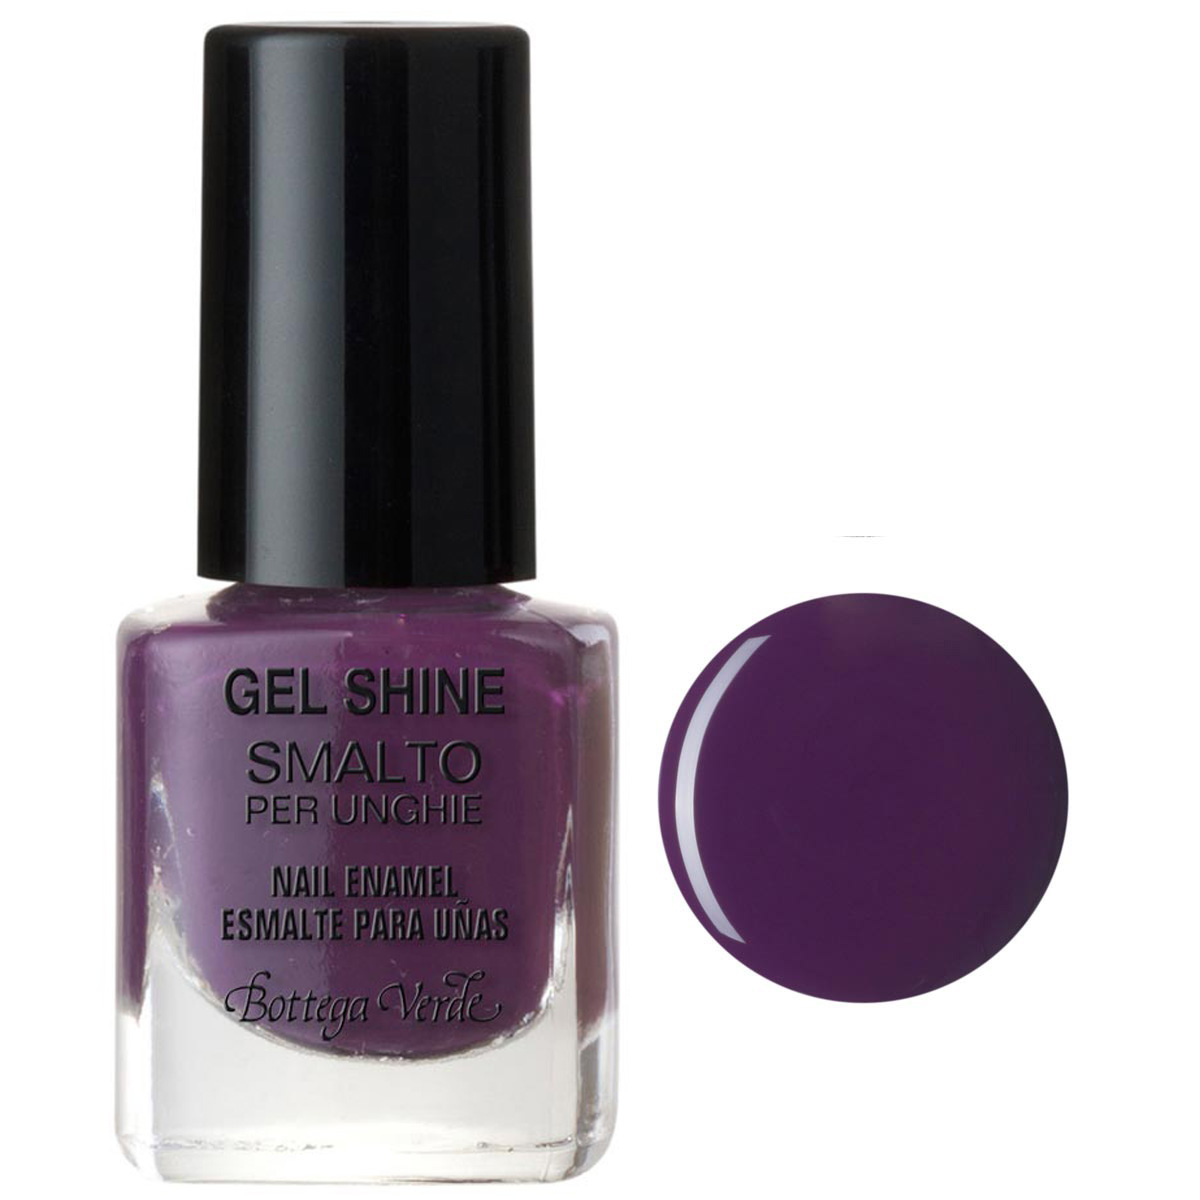 Lac de unghii, violet lucios - Gel Shine, 5 ML